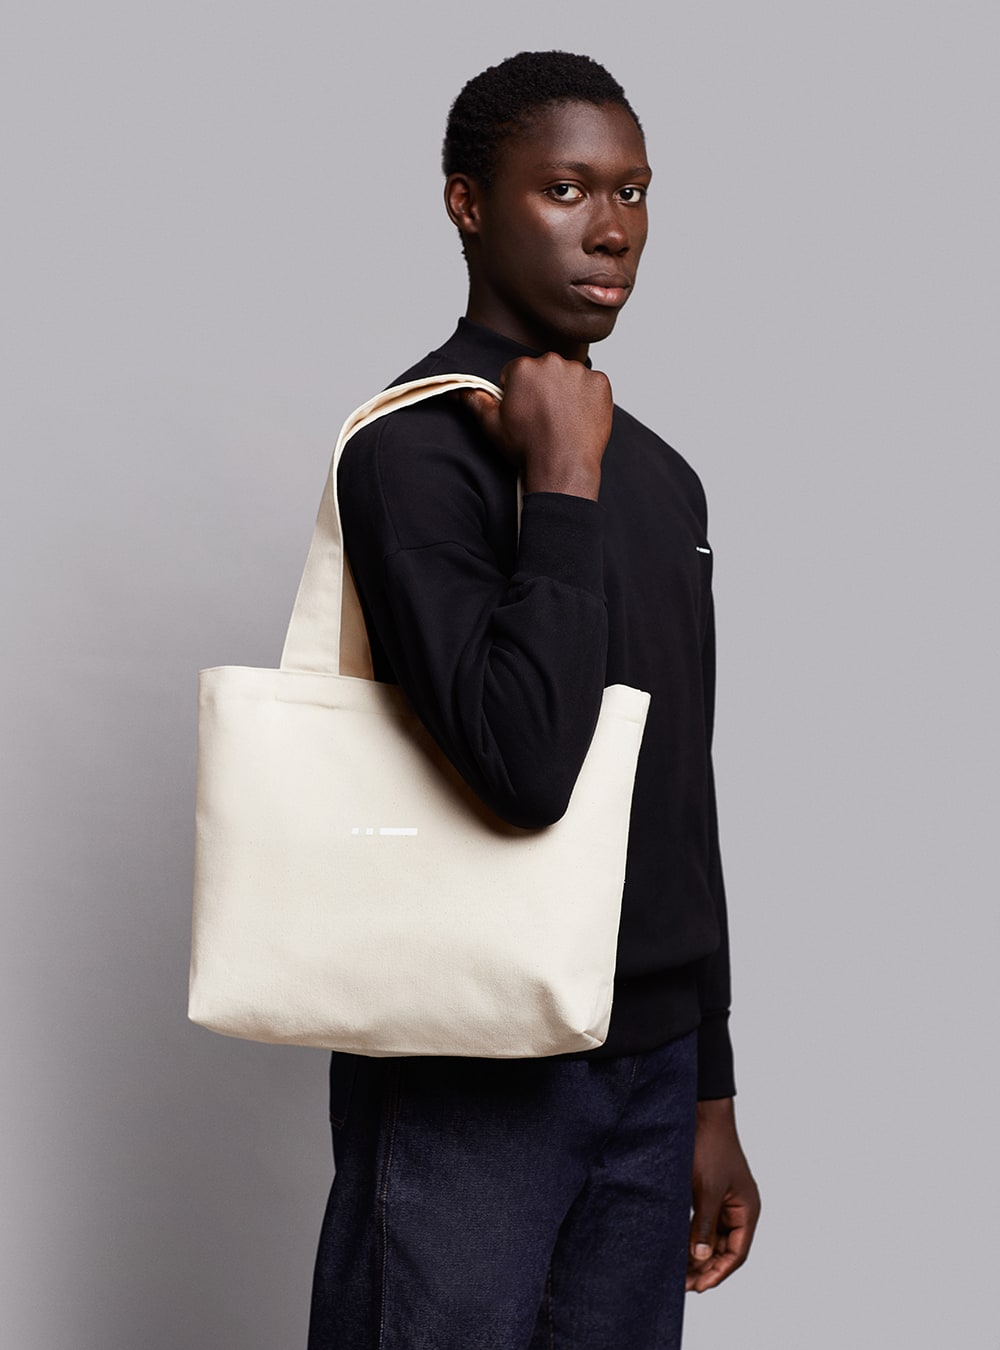 Tote bag (warm white) in cotton, made in Portugal by wetheknot.